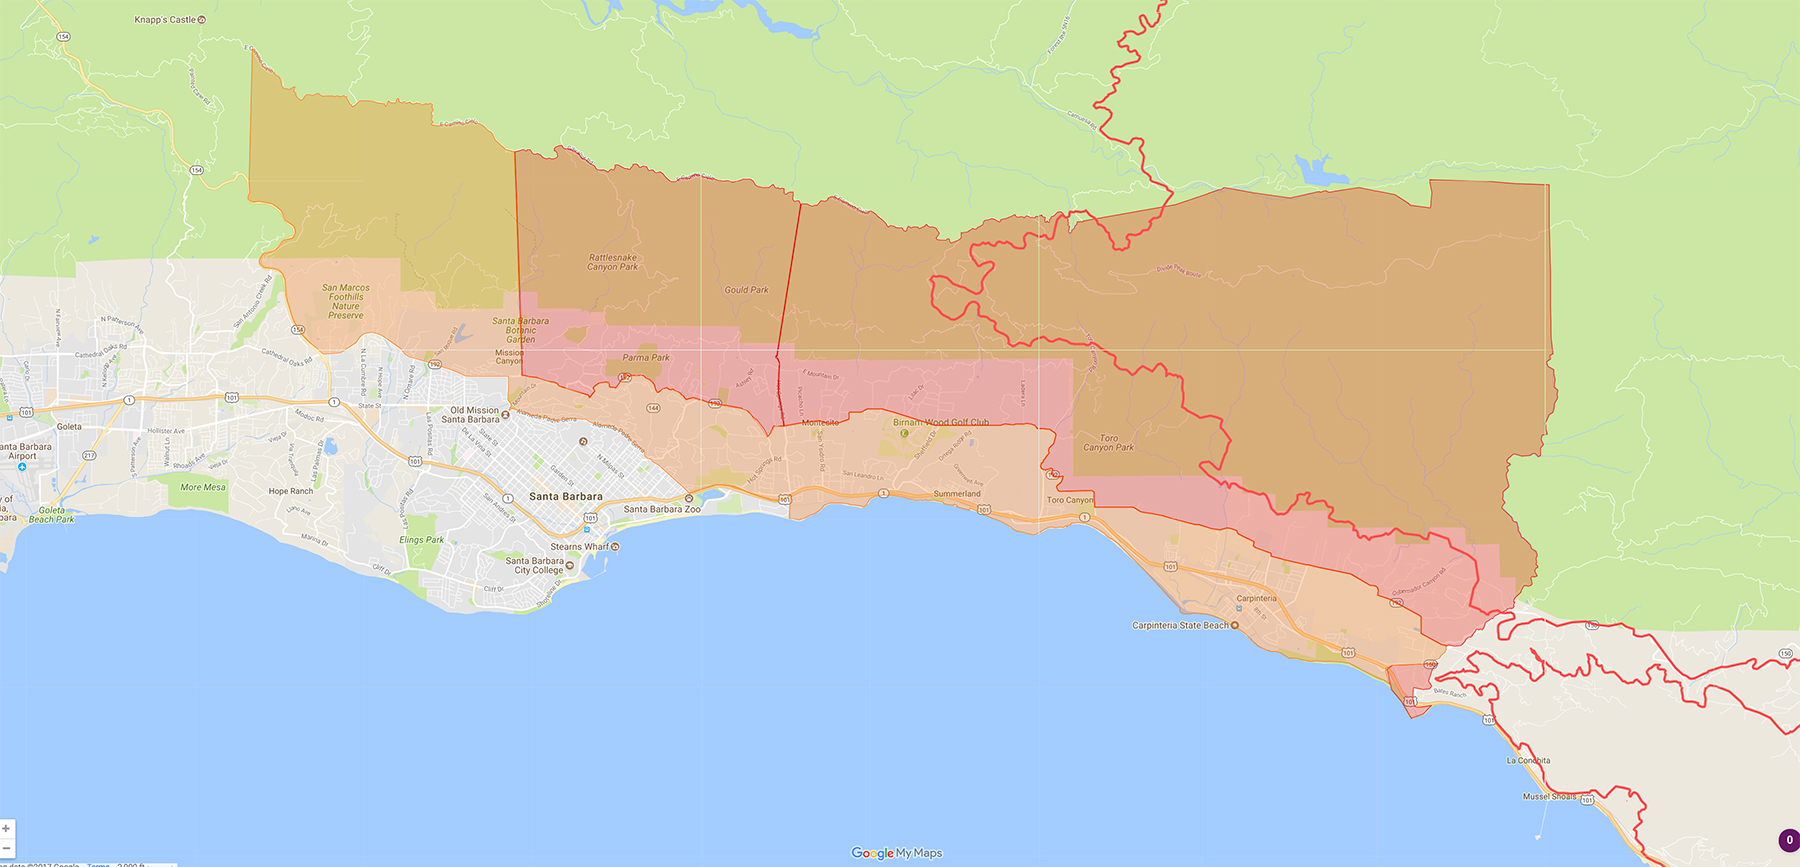 Why a Good Thomas Fire Map Was Hard to Find - The Santa ... Good Map on gool maps, wood maps, is should process maps, close maps, black maps, true maps, the crew maps, unusual maps, types of maps, atlantic cities maps, small maps, first maps, beer cap maps, mincraft maps, gis interactive maps, home maps, neat maps, basic maps, bangkok thailand street maps, fun maps,